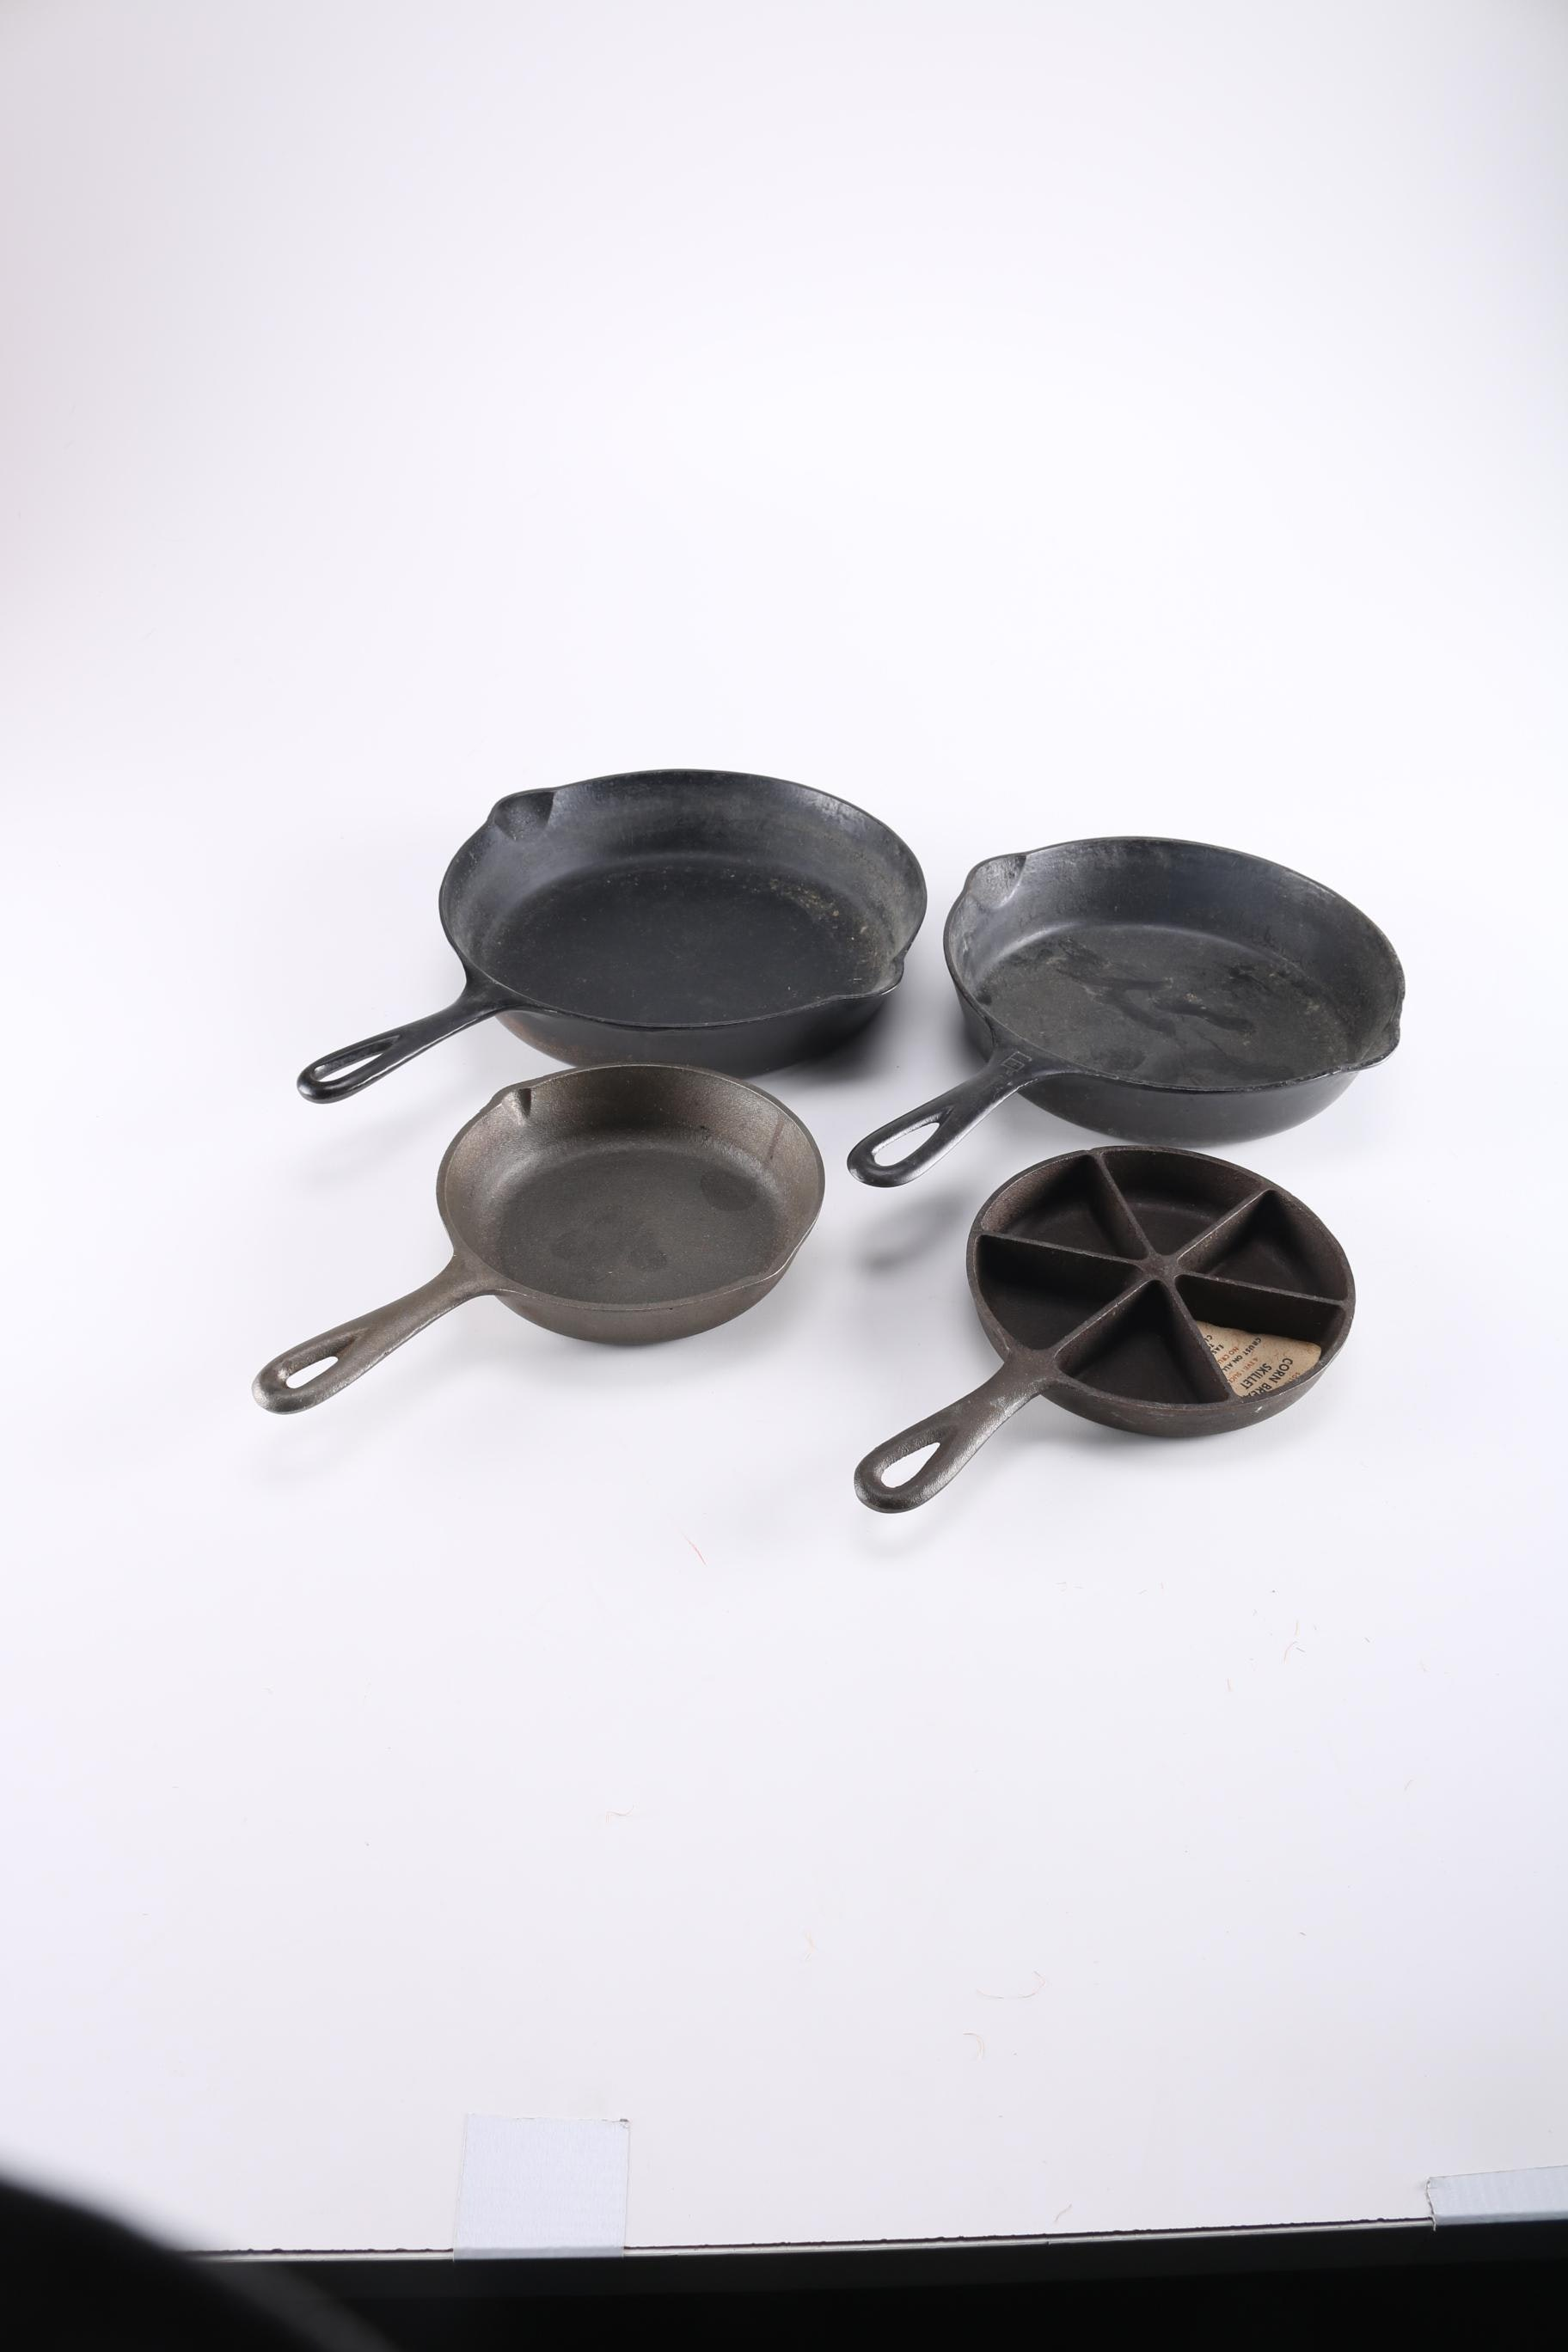 1930-39 Griswold #6 Cast Iron Skillet With a Cornbread Pan and More